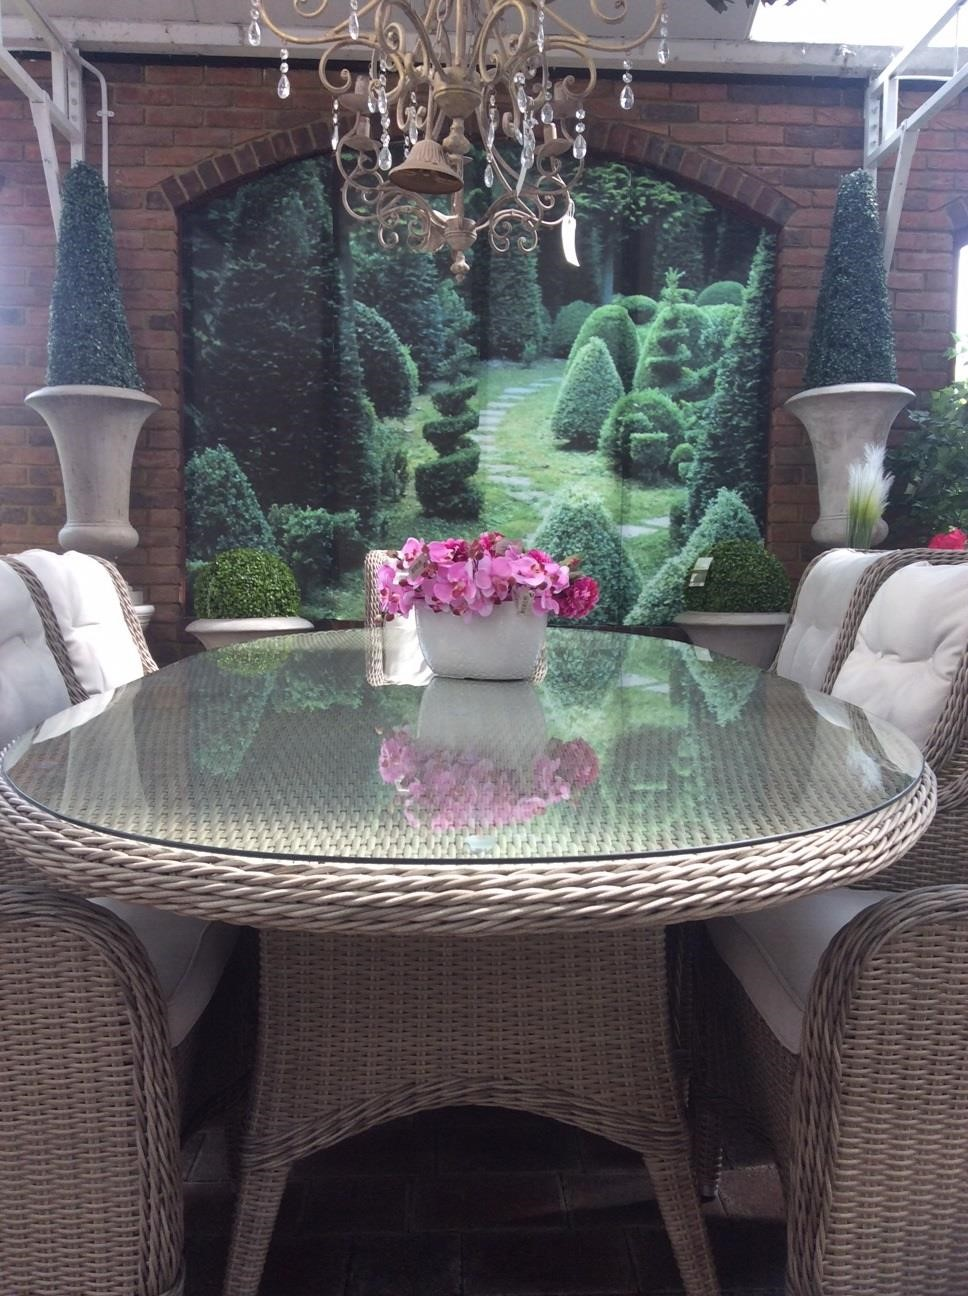 Outdoor Dining Table and Chairs - BBQ Sale at Burston Garden Centre